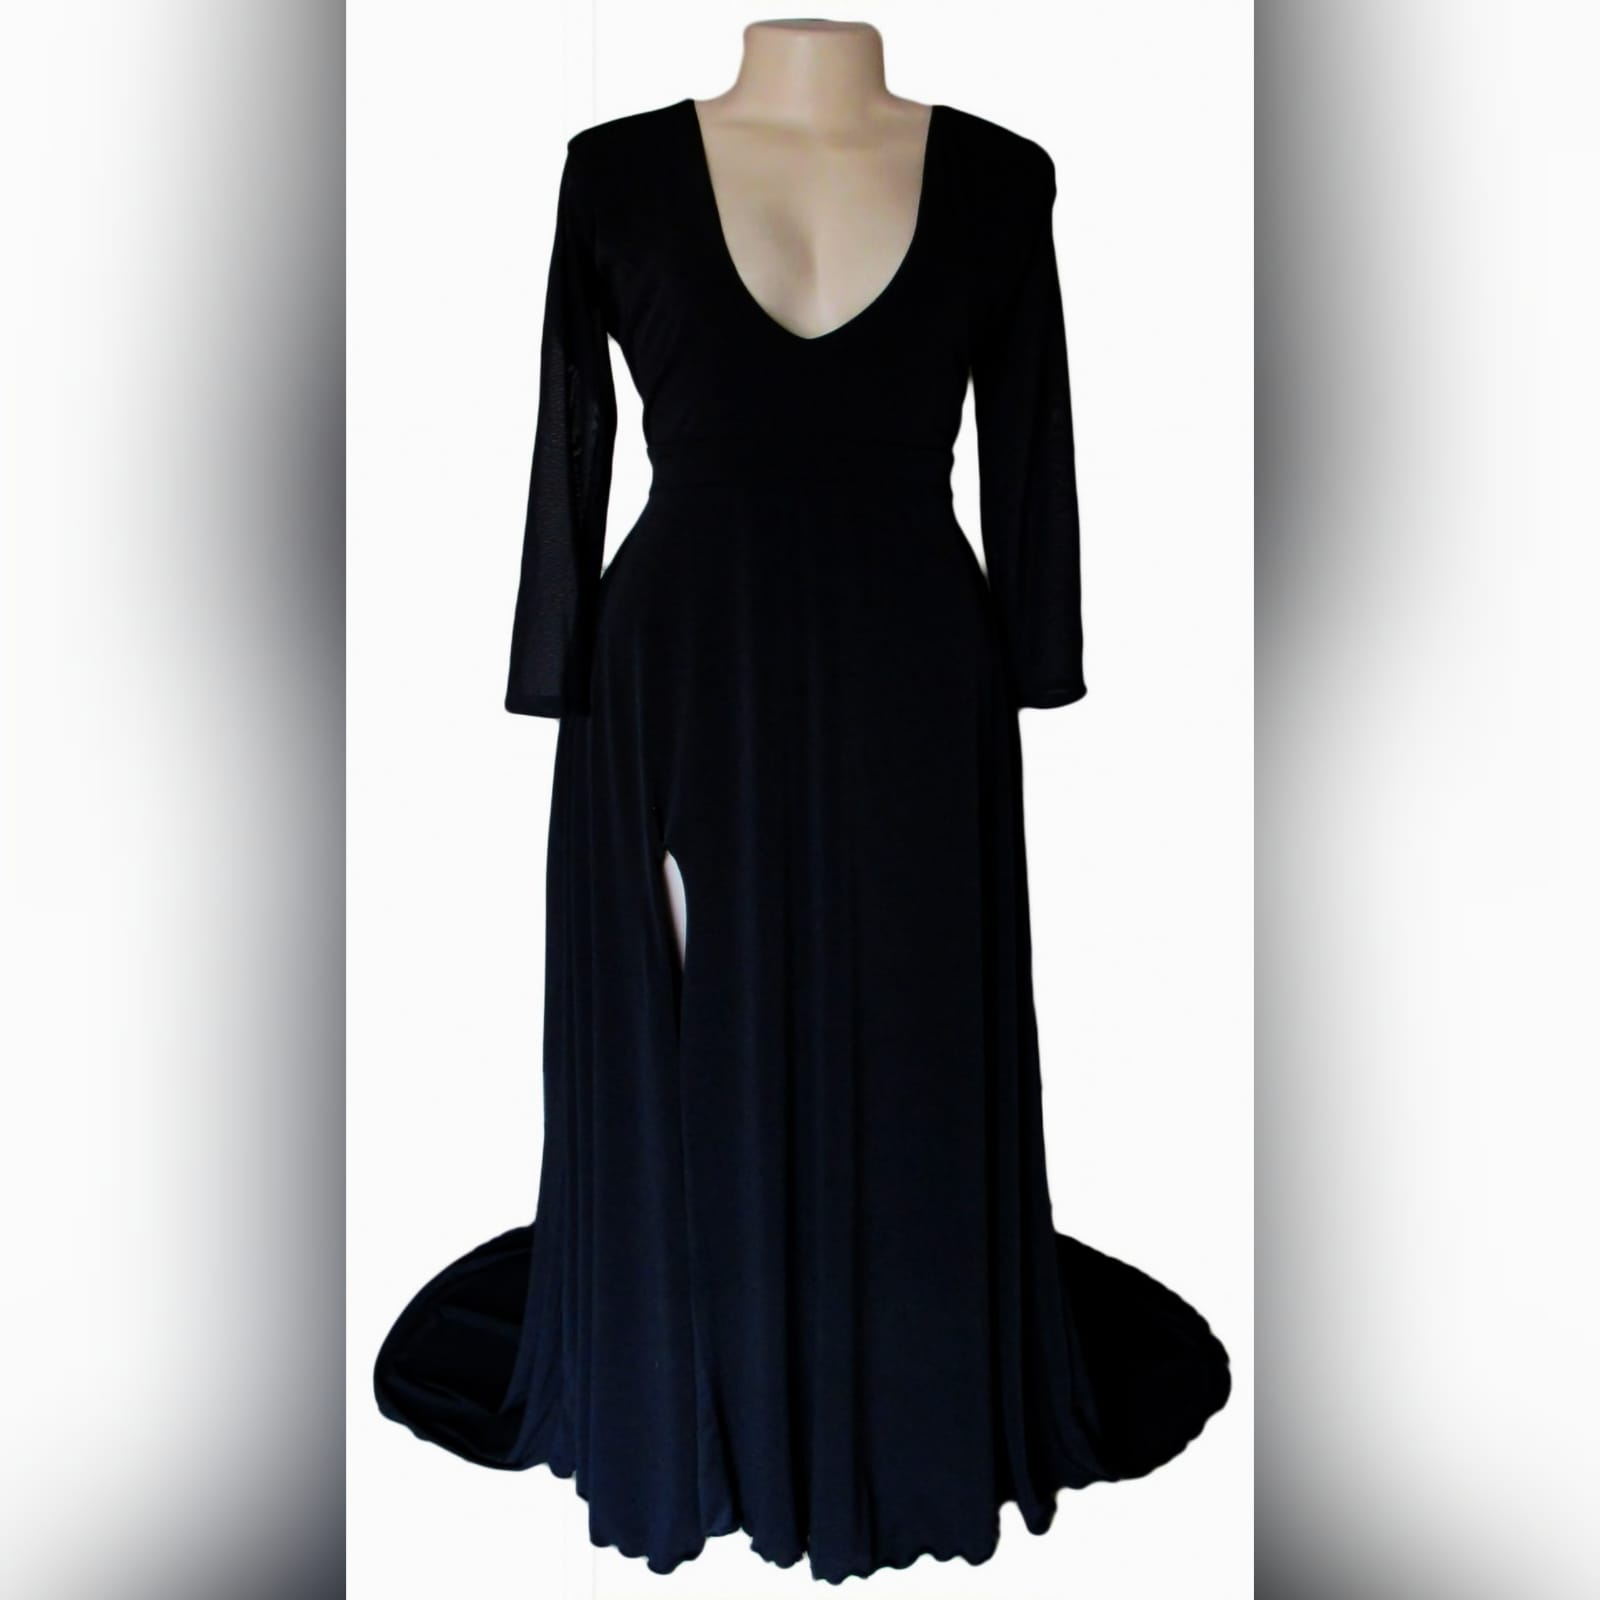 Black simple long formal dress 6 black simple long prom dress with a front and back v neckline. With translucent long sleeves. Slit and a train.